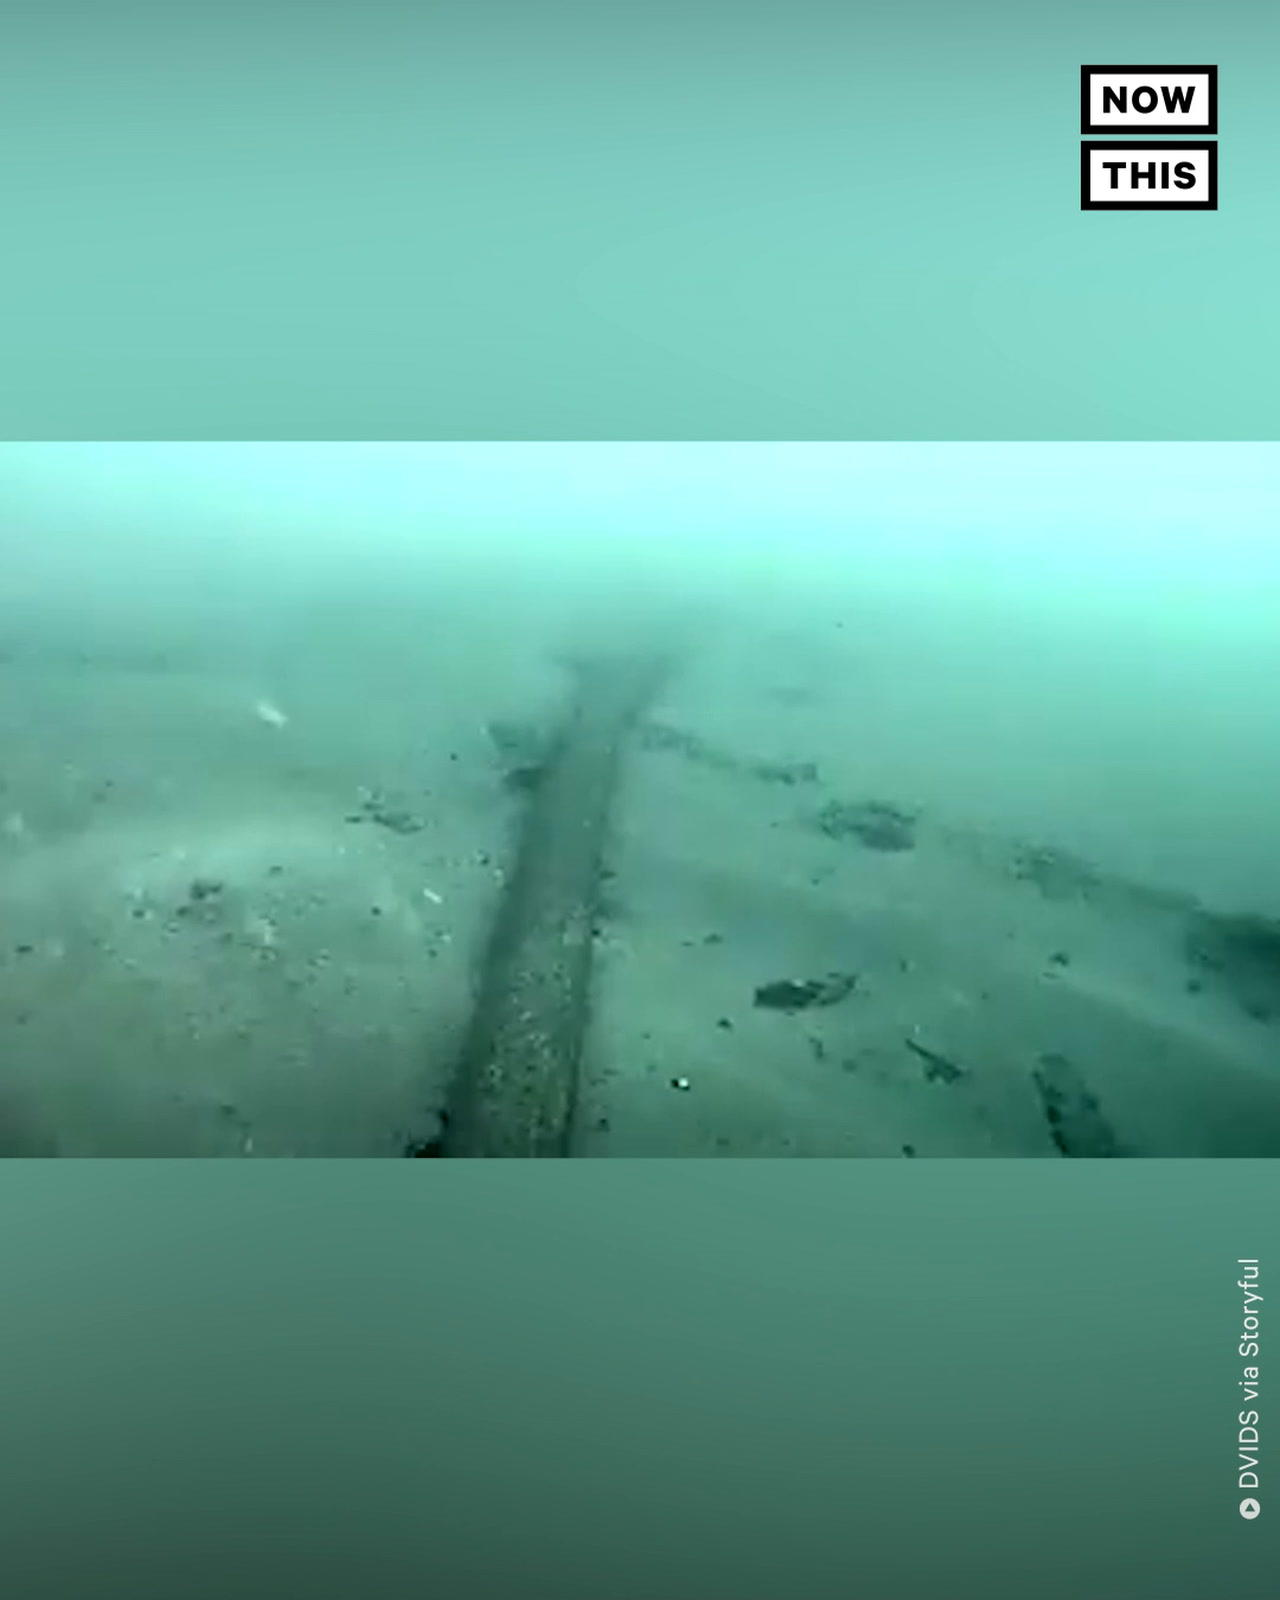 Underwater Footage Shows Fractured Oil Pipeline Off California Coast